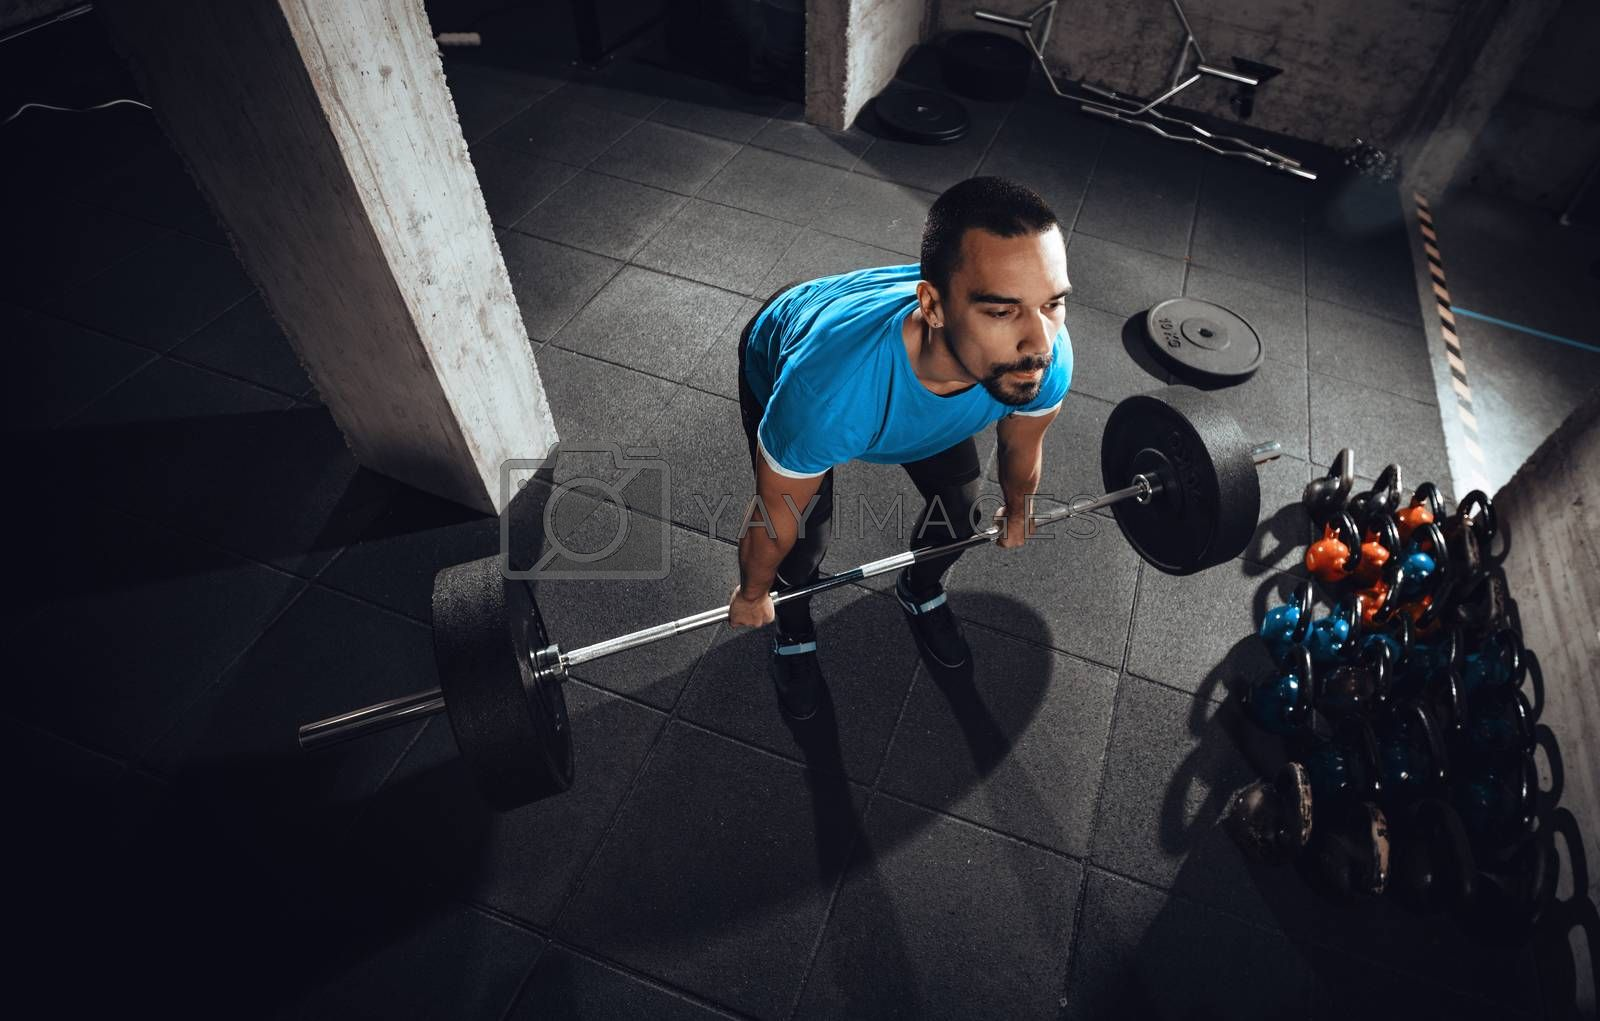 Young muscular man ready to deadlift exercise at the gym.